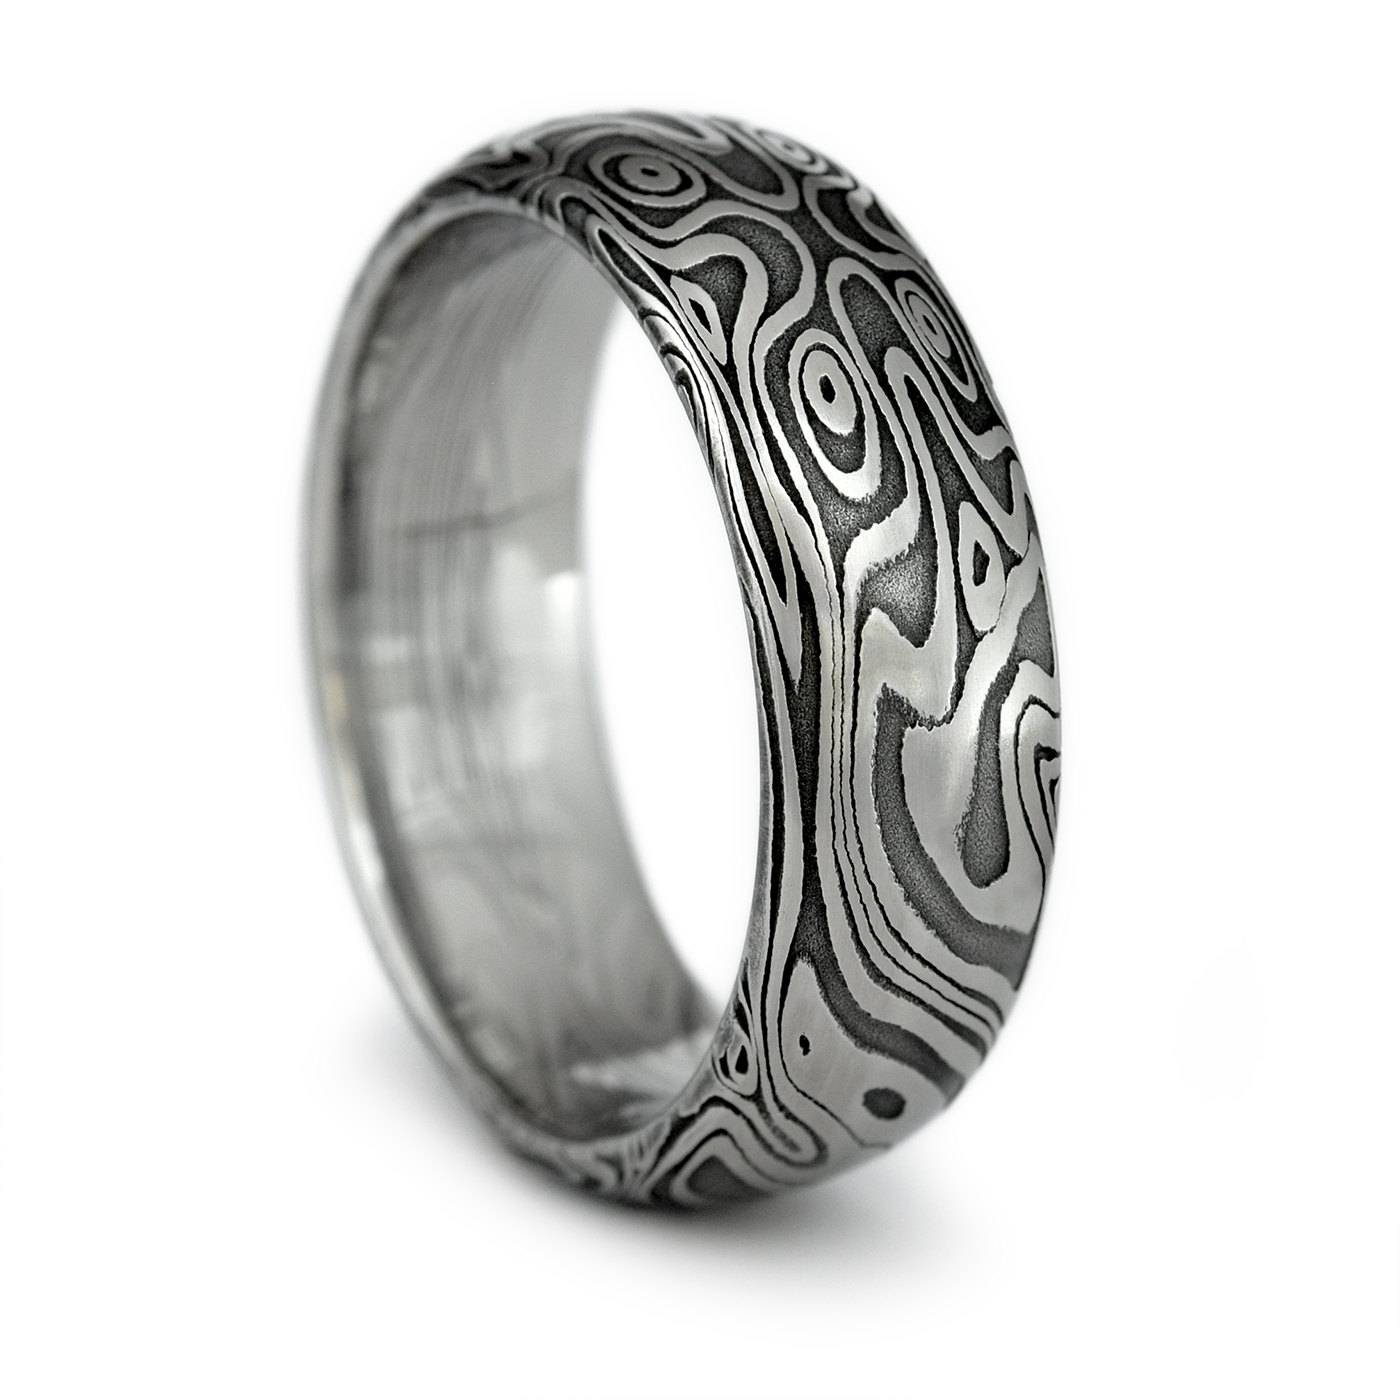 Wood Grain Ring Damascus Steel Men's Domed Wedding Band Intended For Men's Wood Grain Wedding Bands (View 3 of 15)